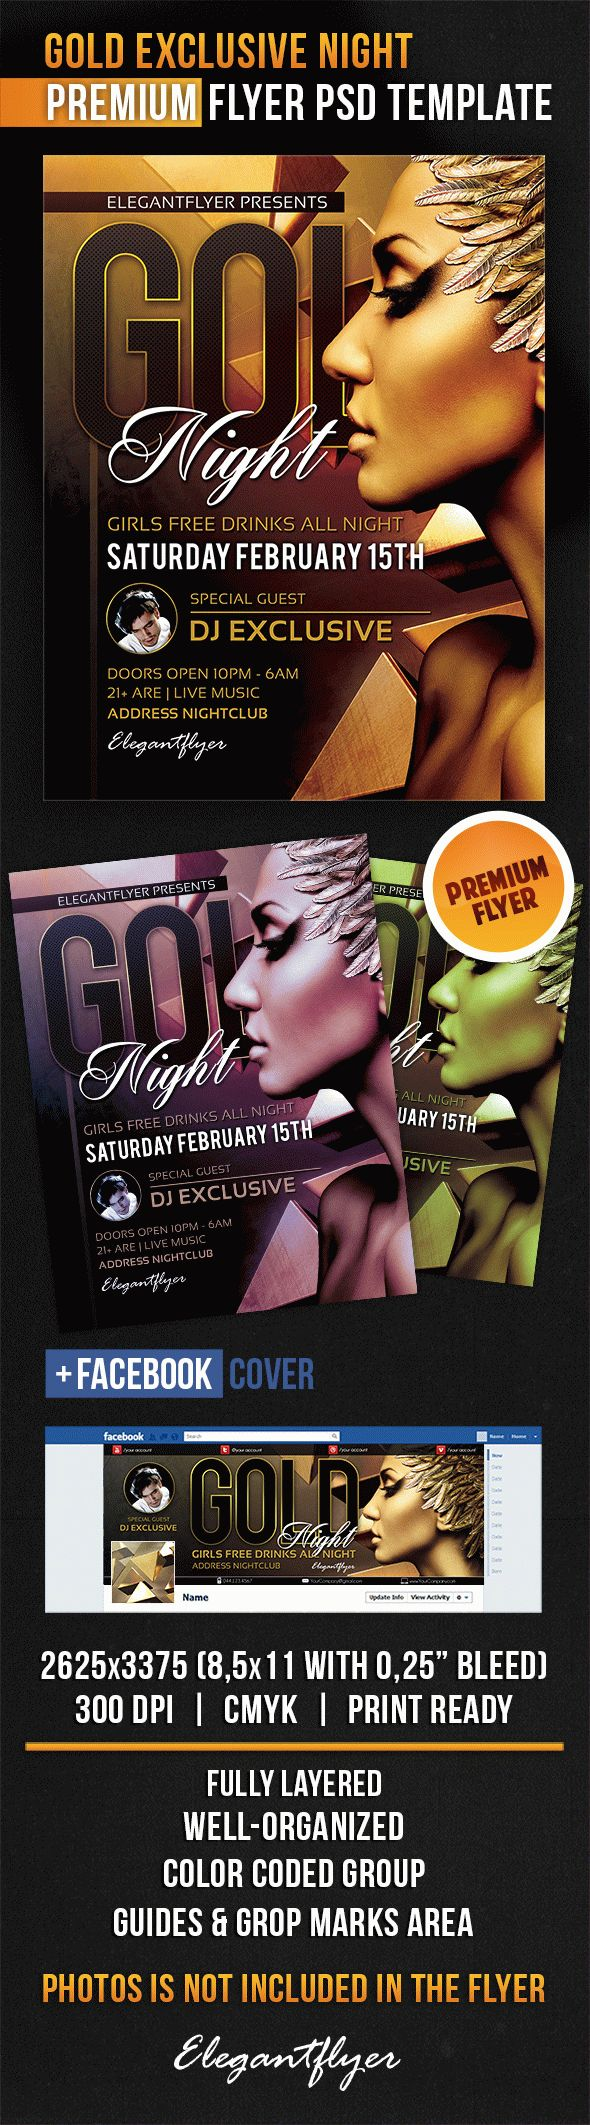 Gold Exclusive Night – Flyer PSD Template + Facebook Cover